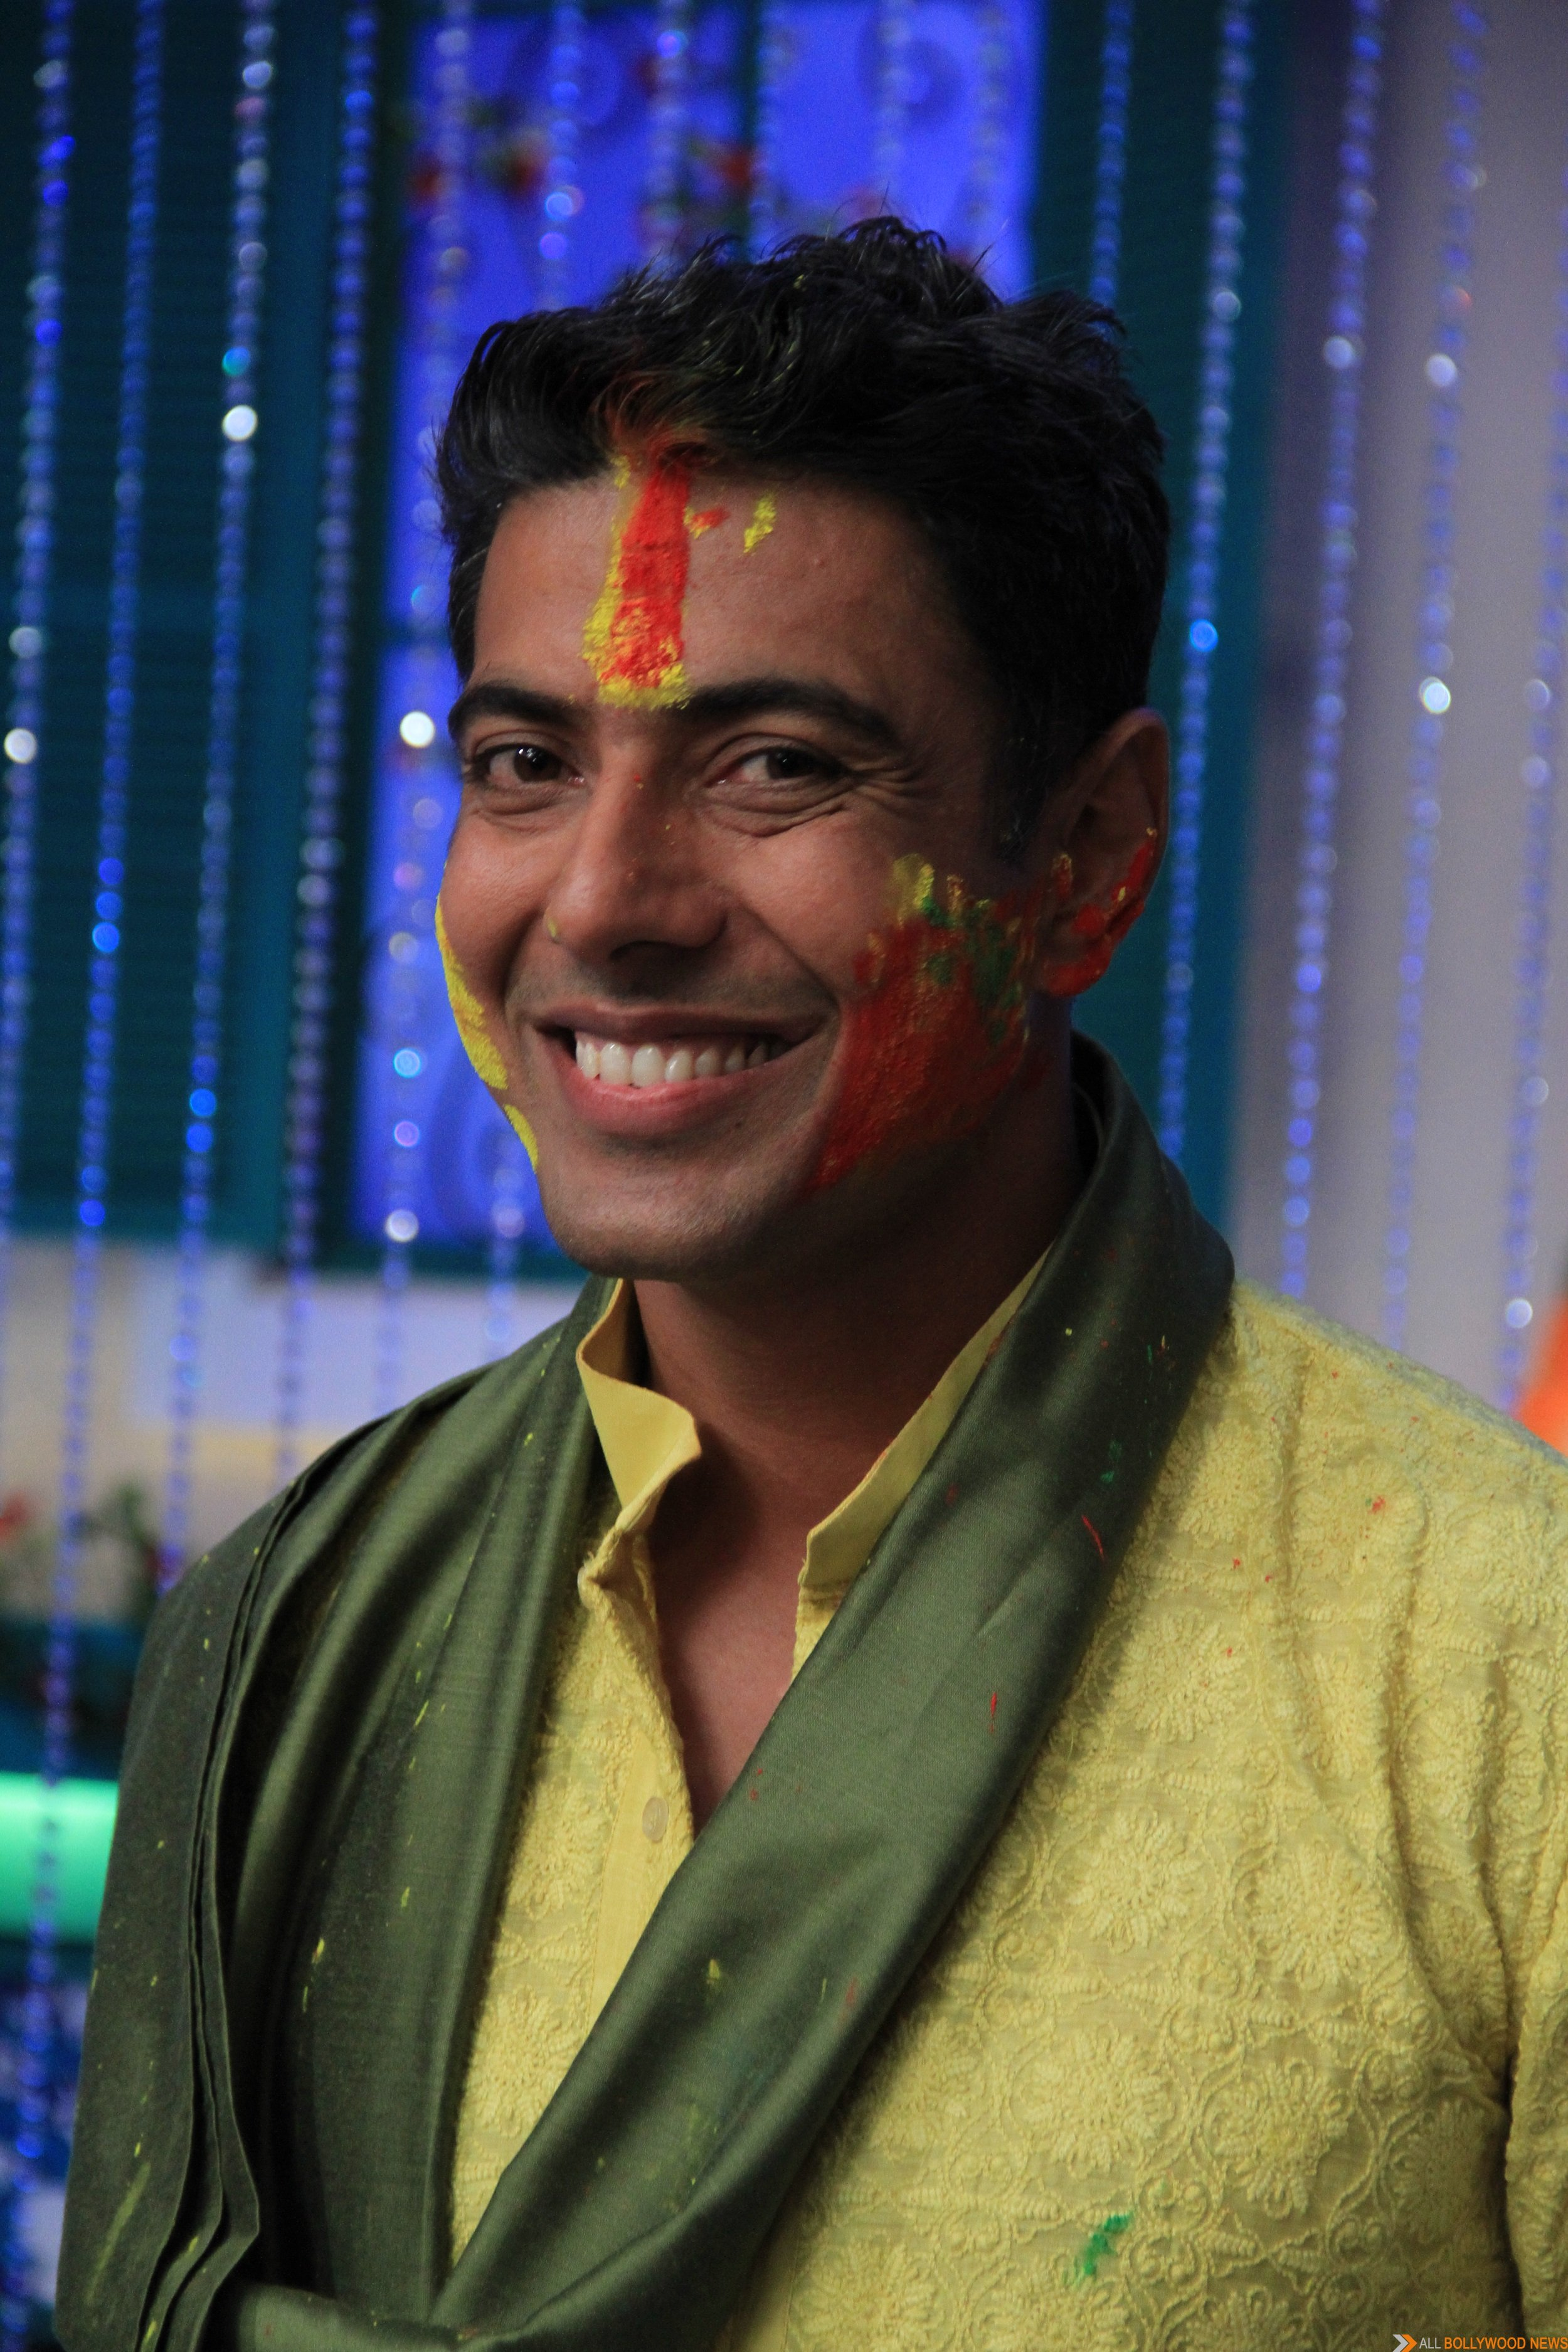 Chef Ranveer Brar celebrates Holi on MasterChef India-4 set